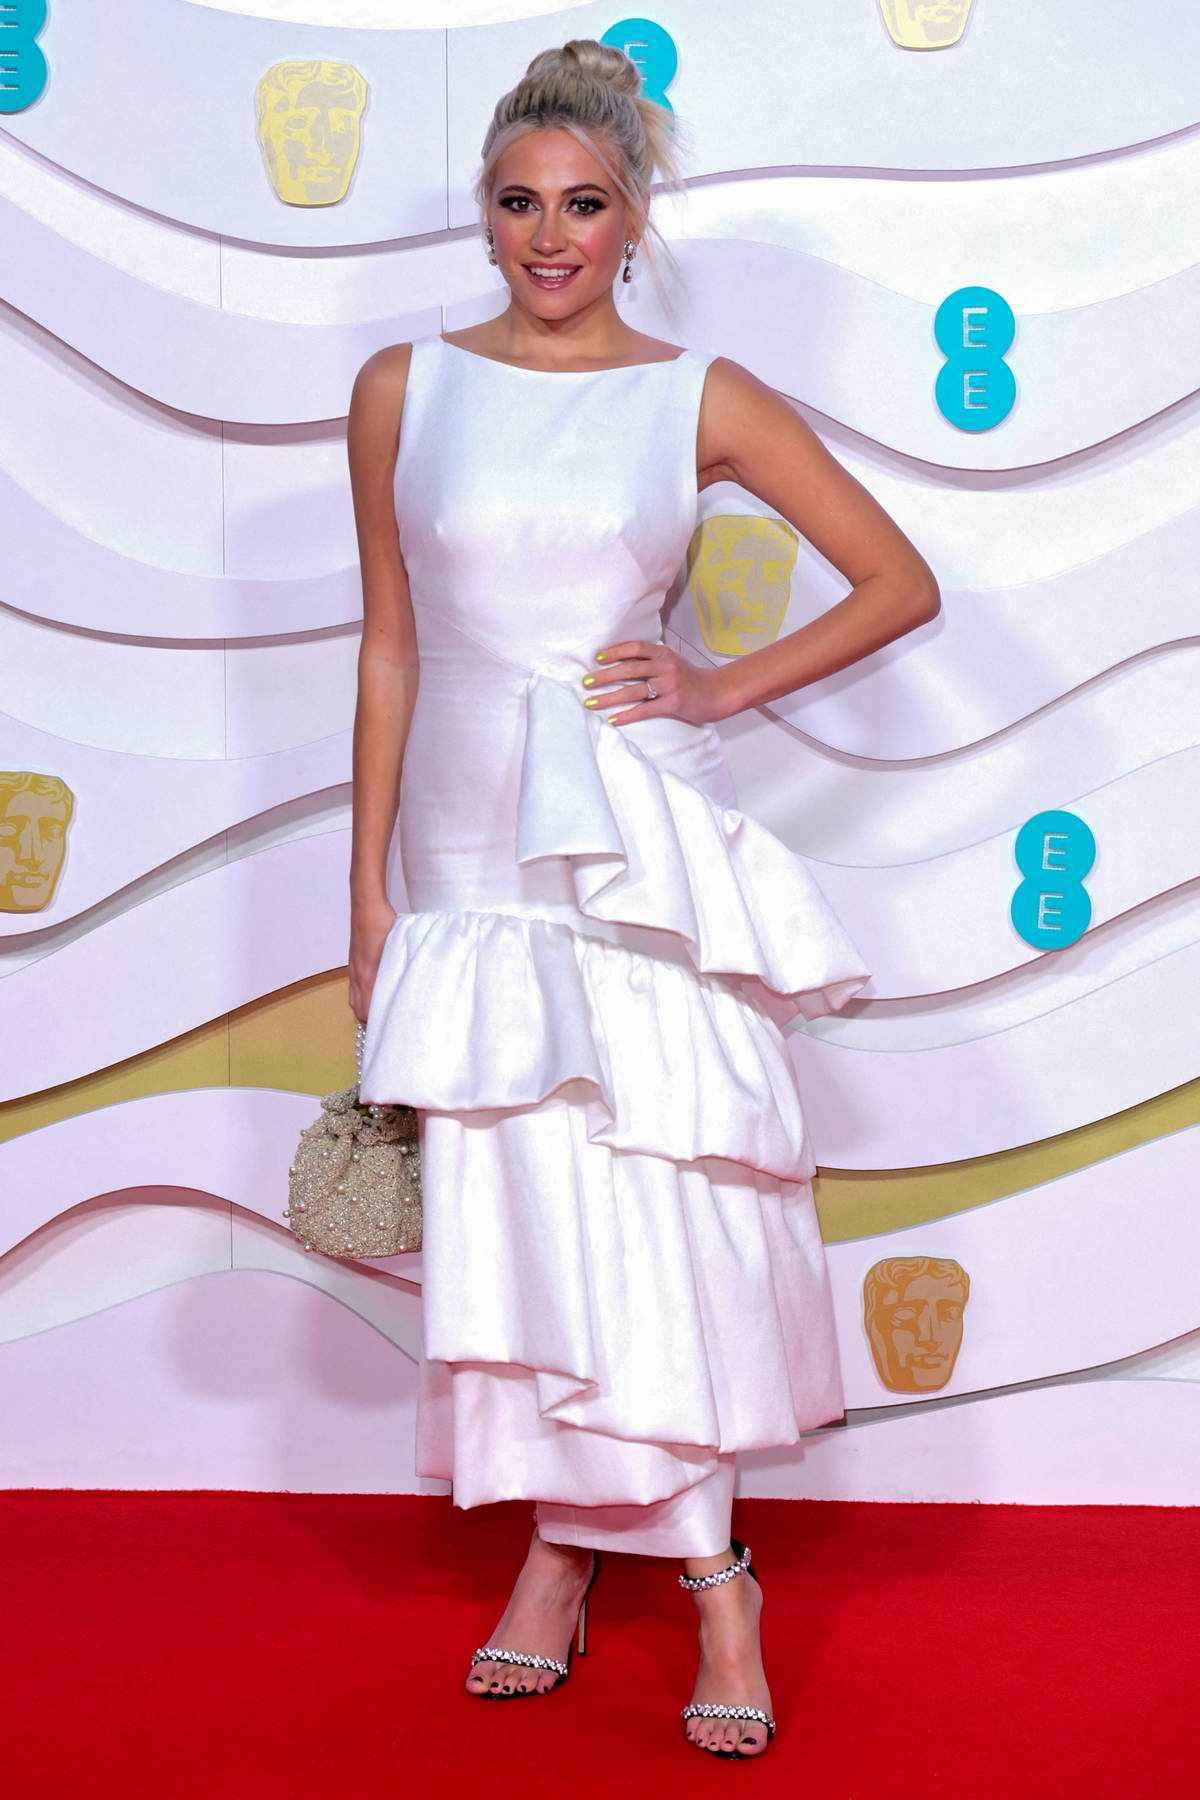 Pixie Lott attends the 73rd EE British Academy Film Awards at Royal Albert Hall in London, UK